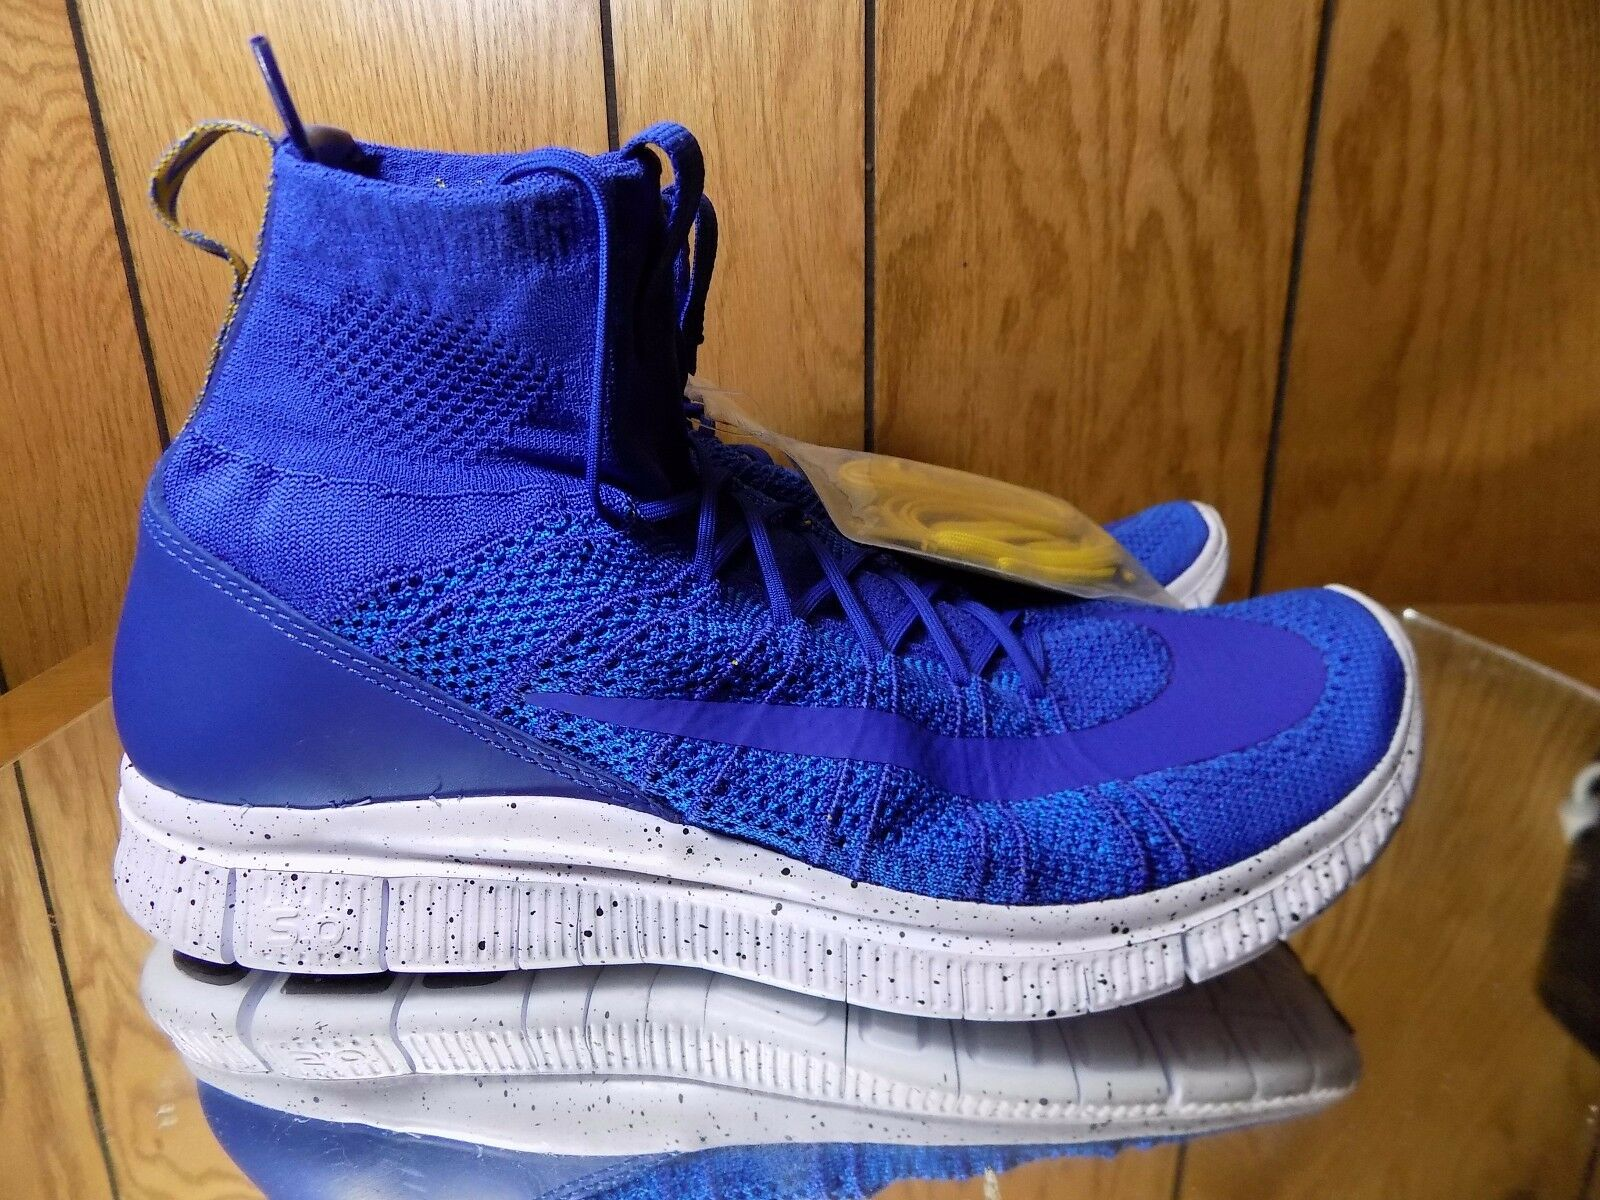 New Nike Free Flyknit Mercurial shoes Trainers Sport Athletic bluee 805554 400 s.